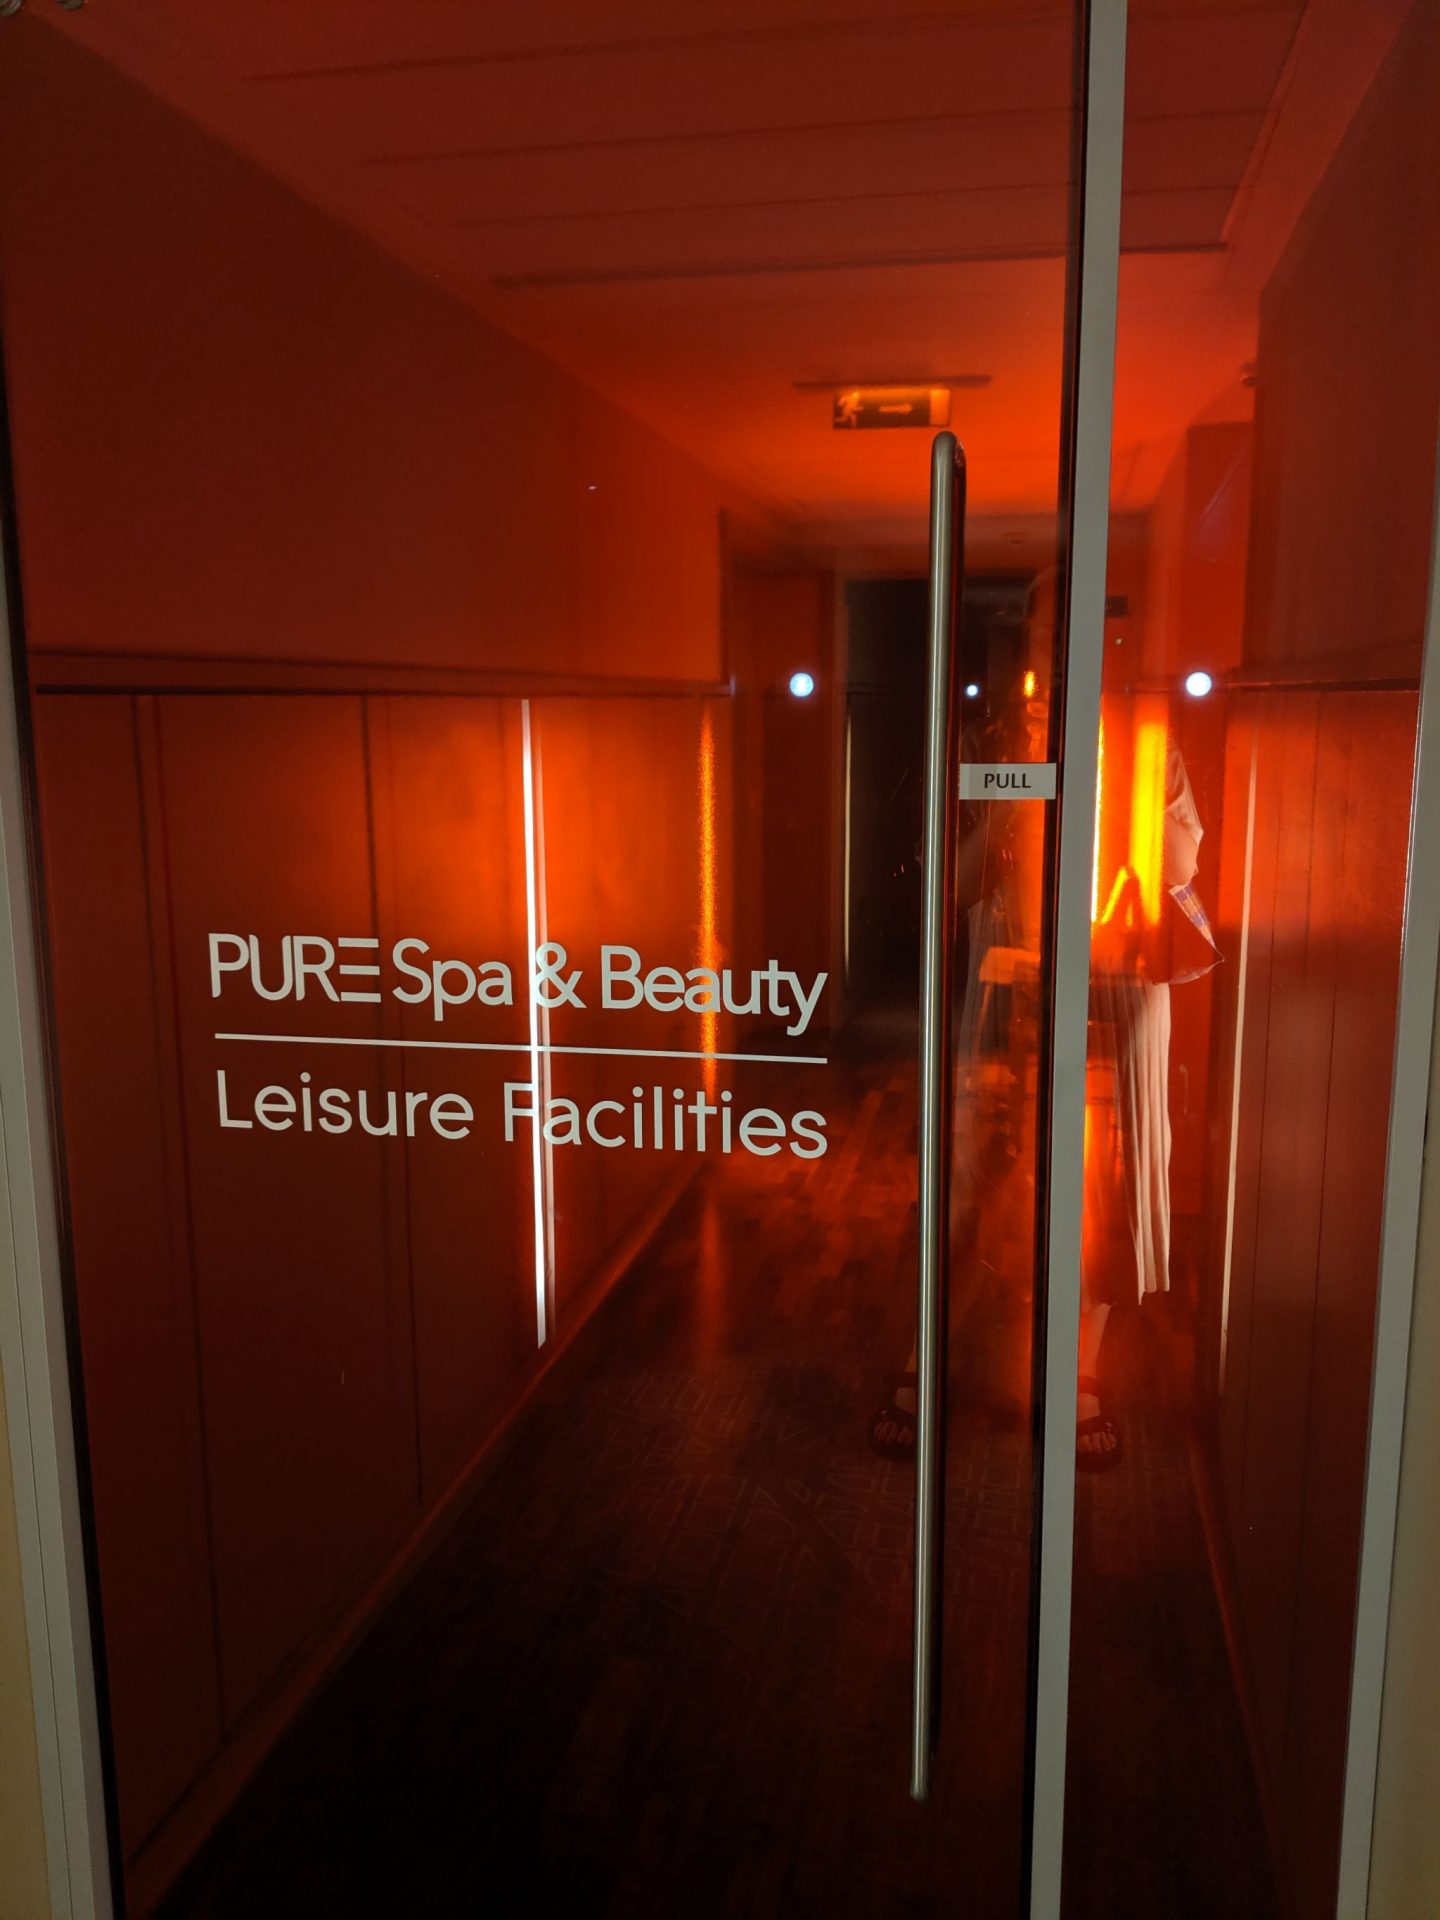 Taking some 'me' time at PURE Spa & Beauty